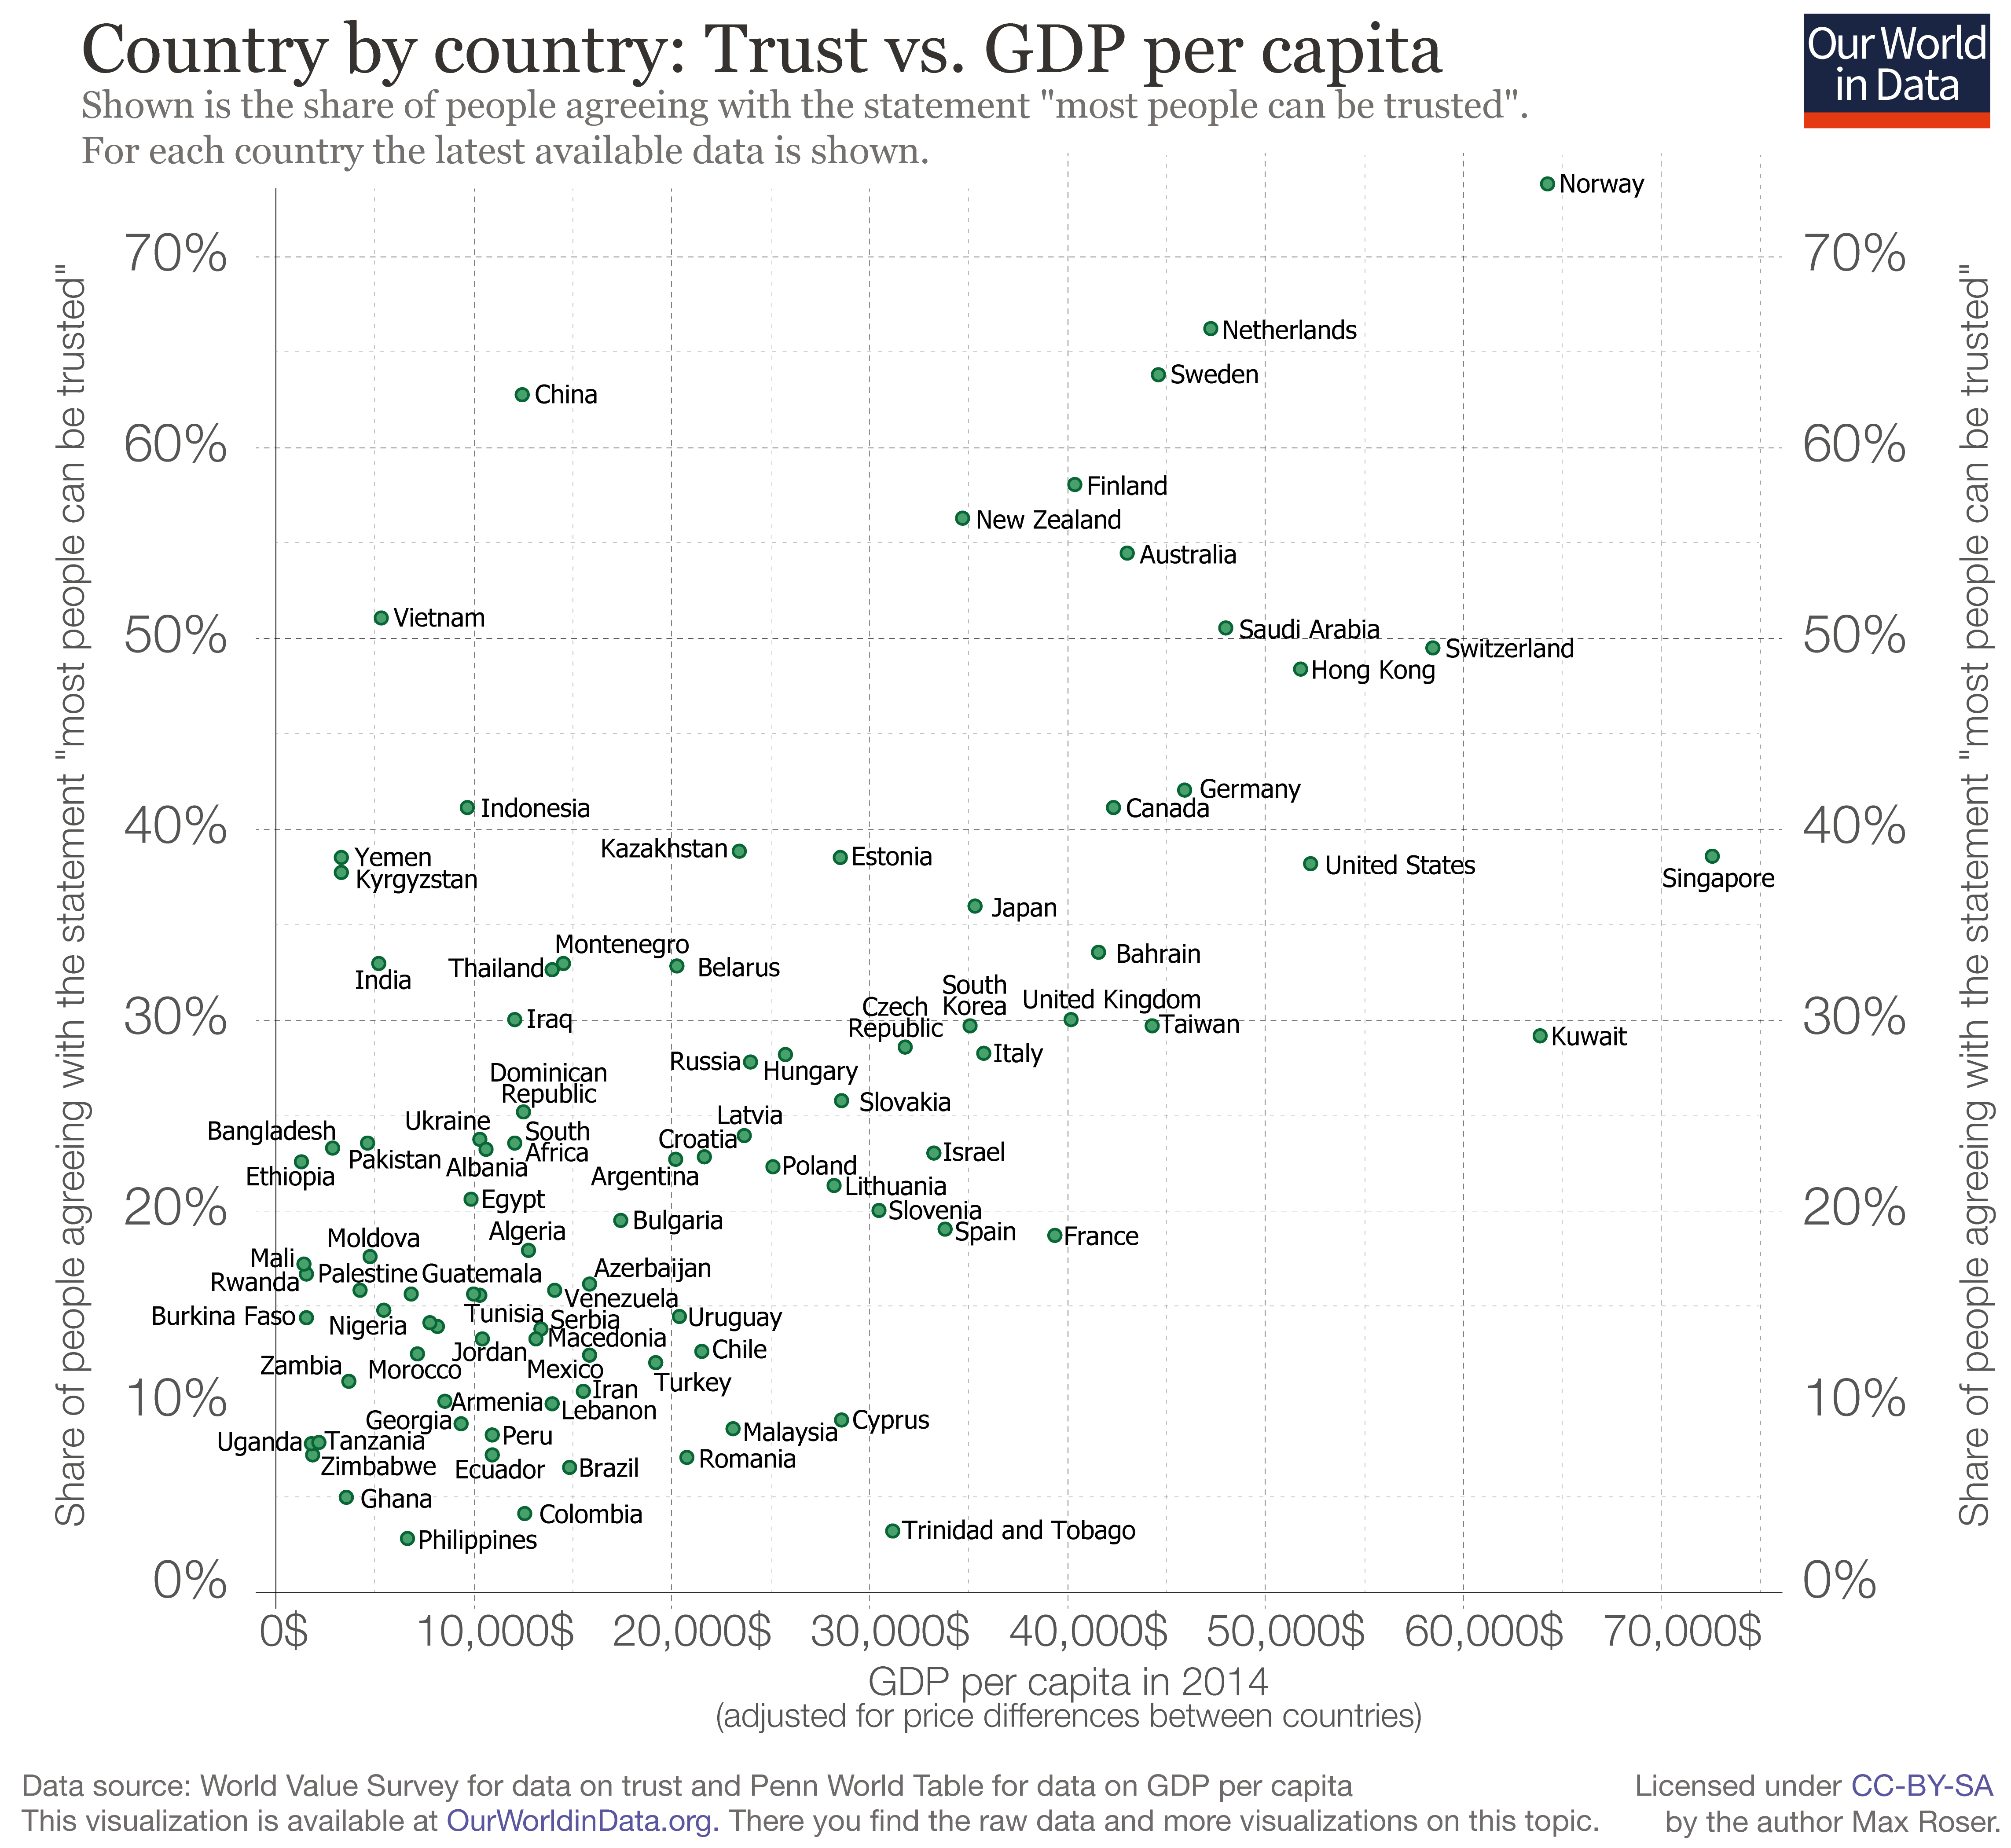 Trust - Our World in Data